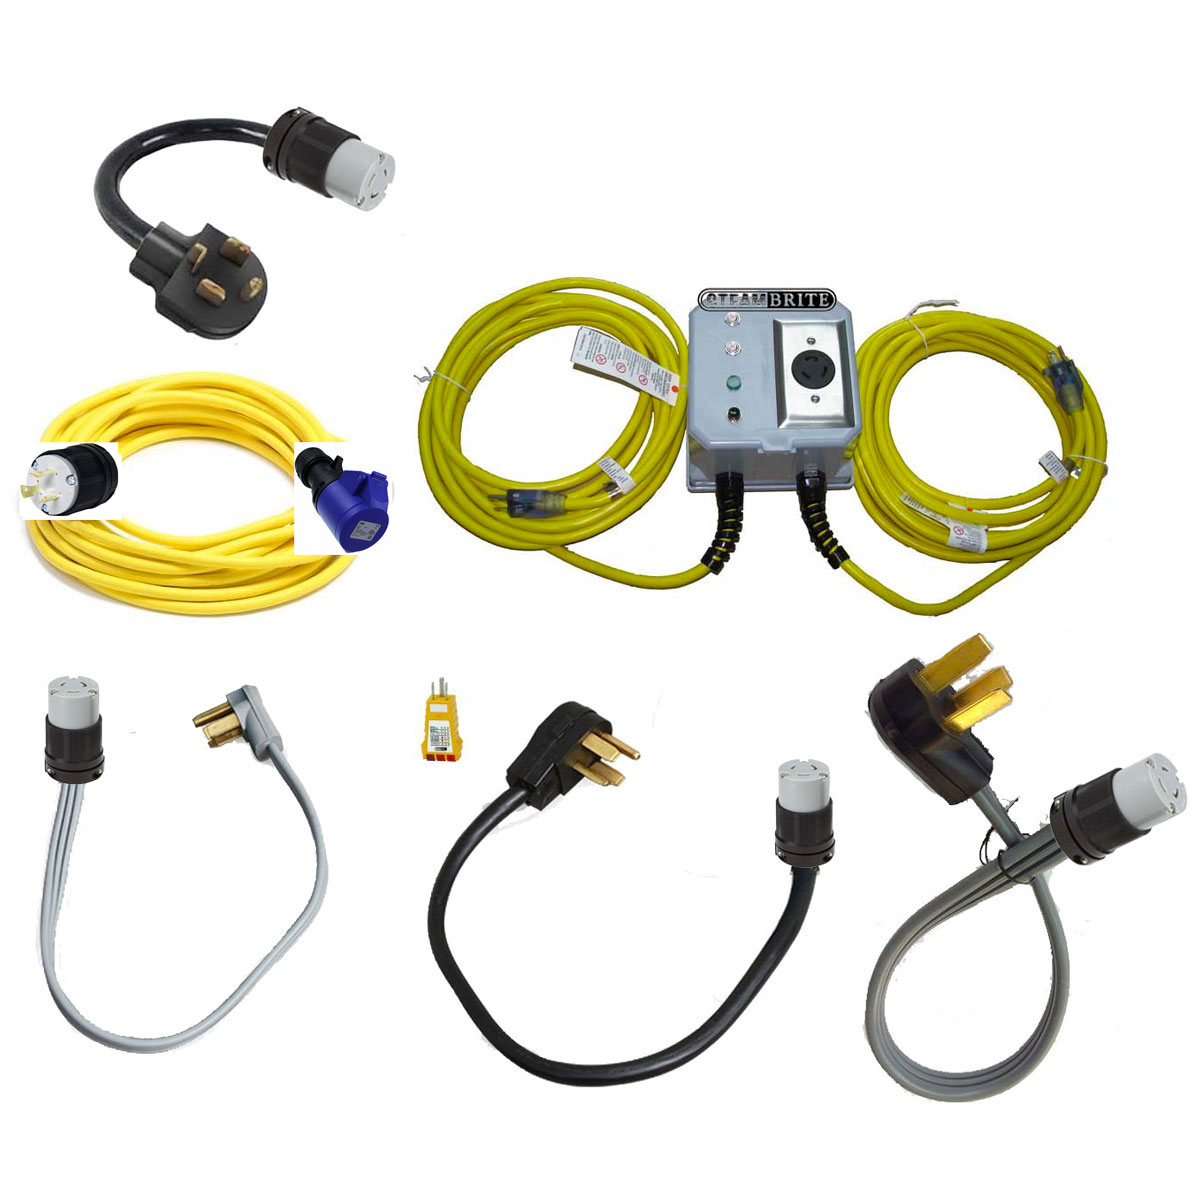 SteamBrite HTC T5 DURATIQ 5 Power Cord Set L6-20 Professional Power Supply Kit 20191211 Bundle